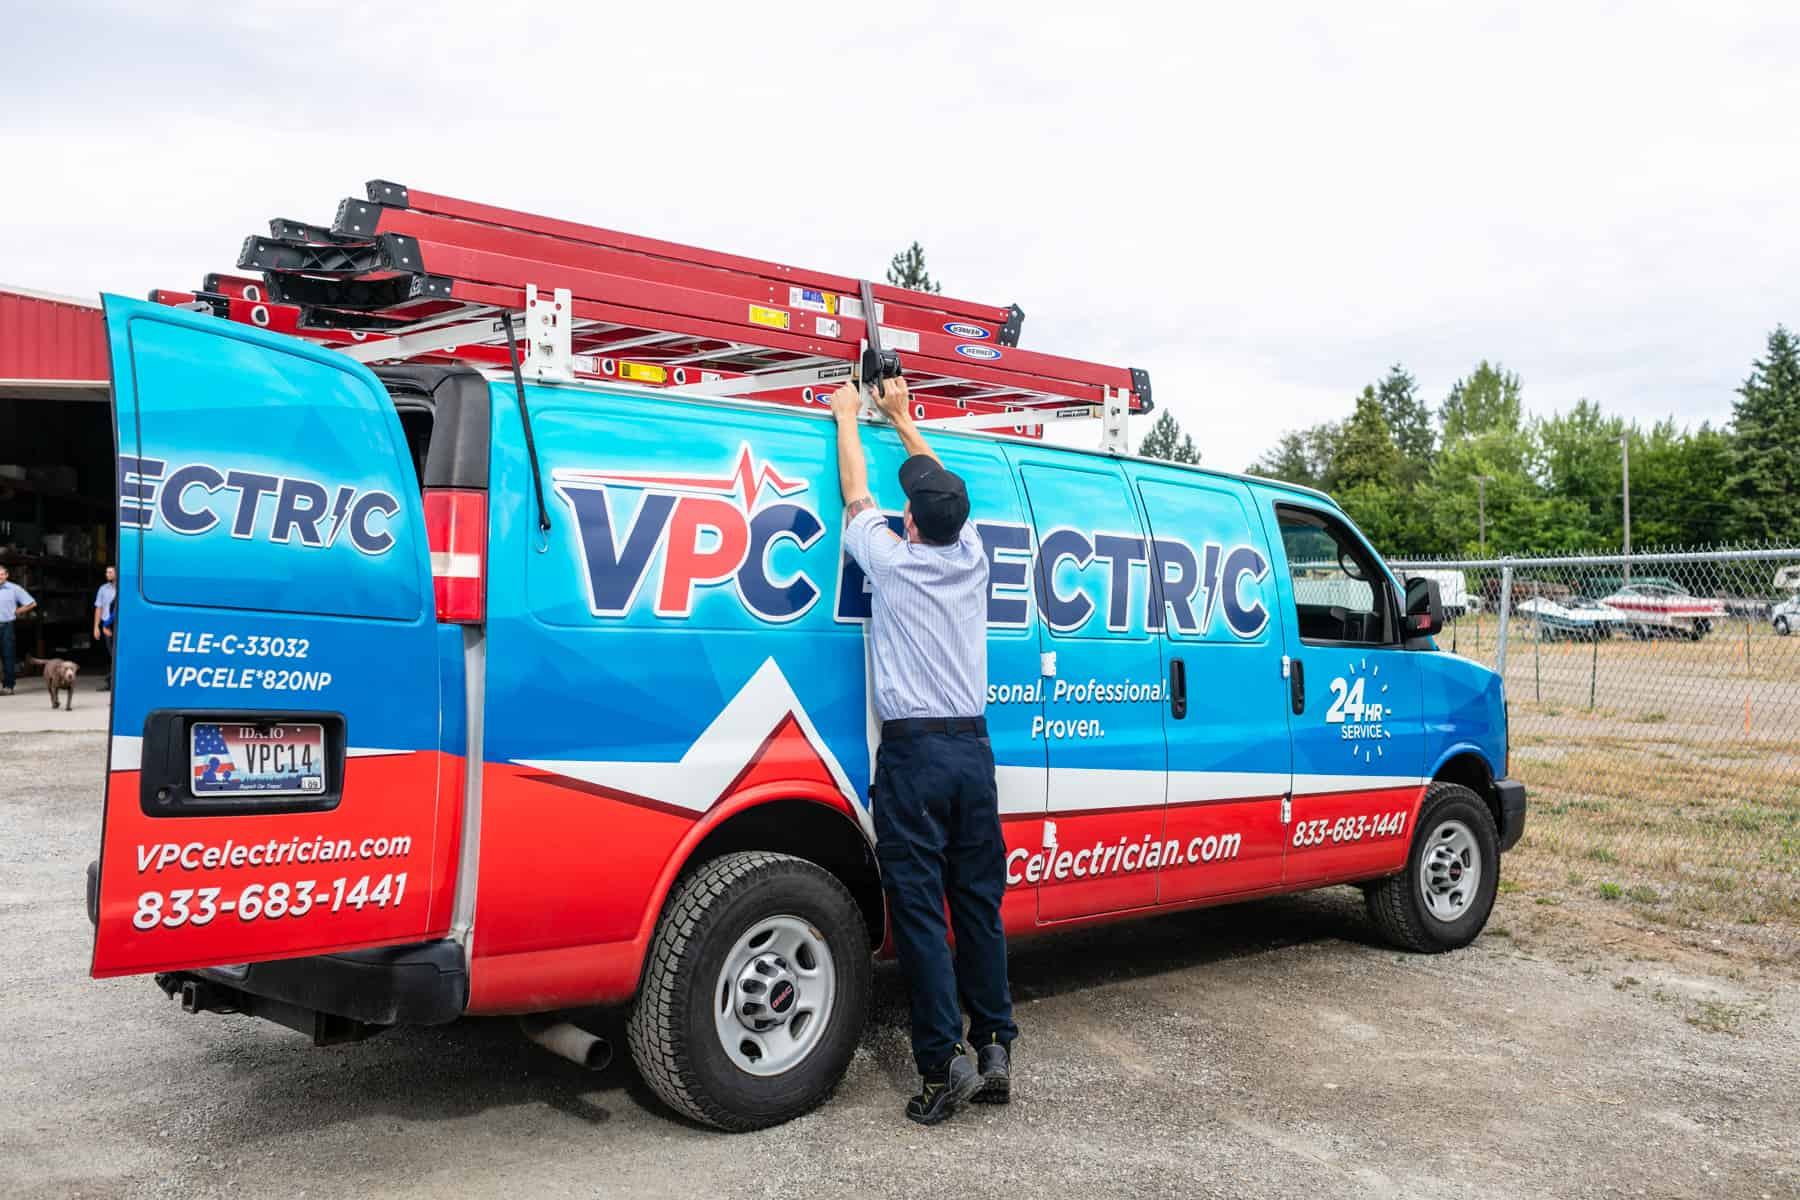 A local electrician for VPC Electric loading a ladder onto a service van